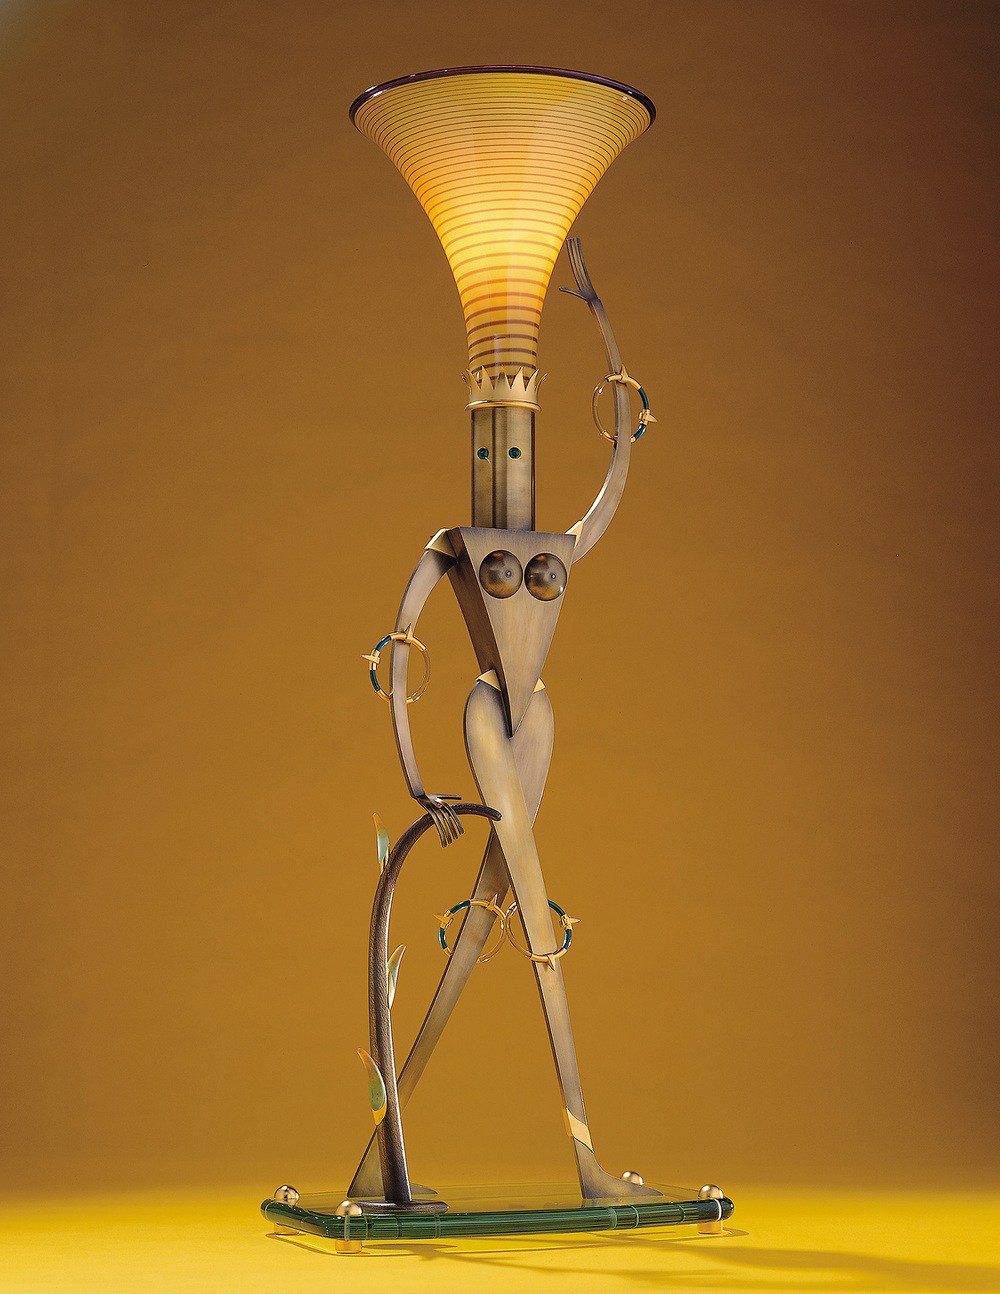 Statuesque   1999. Blown glass, brass, gold-plated brass, aluminum, plate glass, Vitrolite and lampworked glass. 42 x 17 x 11""